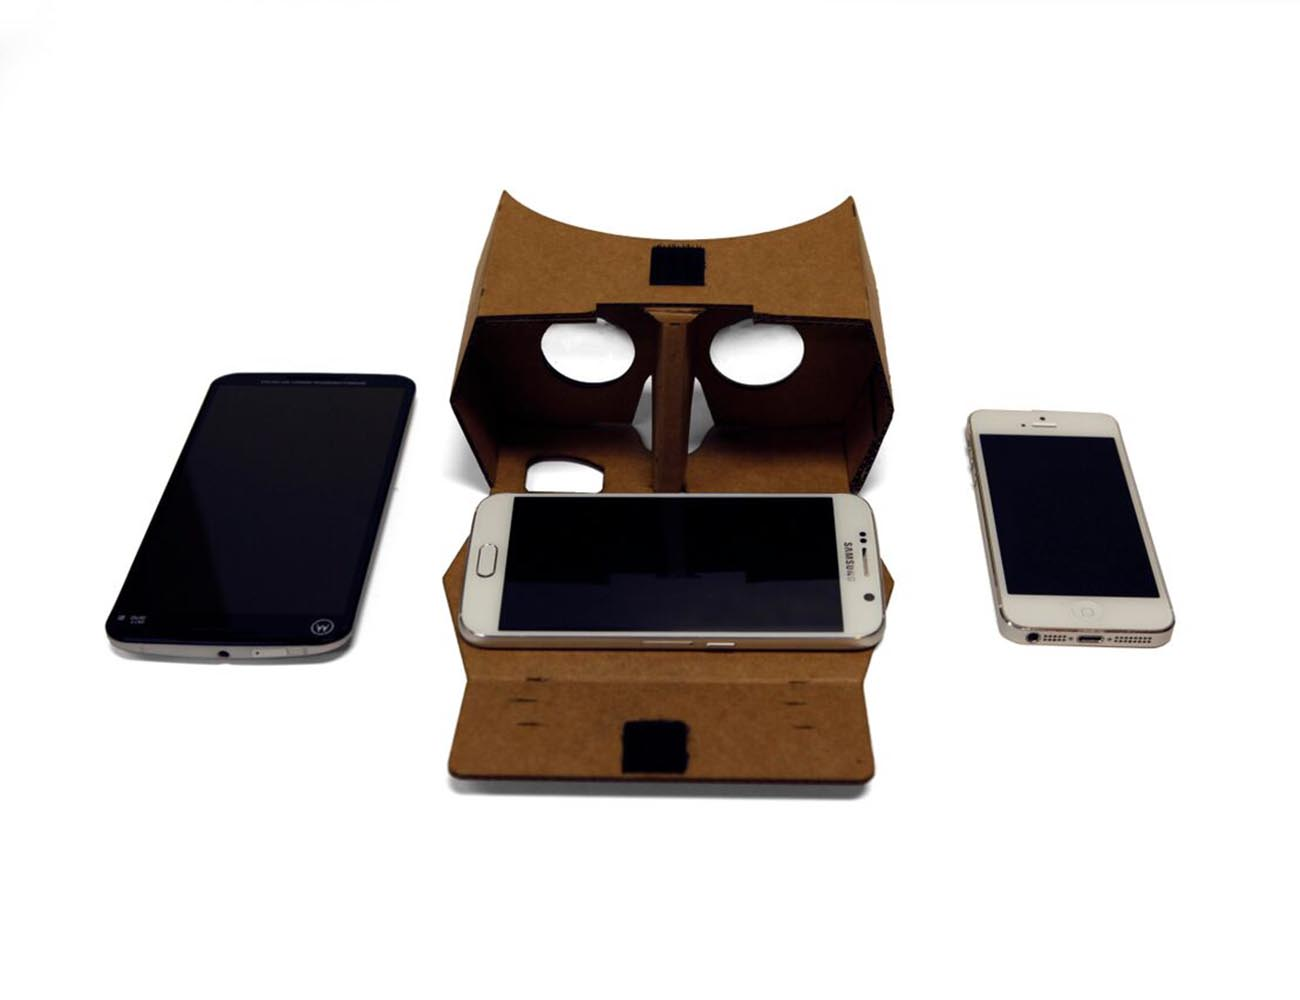 P2%3A+Virtual+Reality+Cardboard+Pop-Up+Viewer